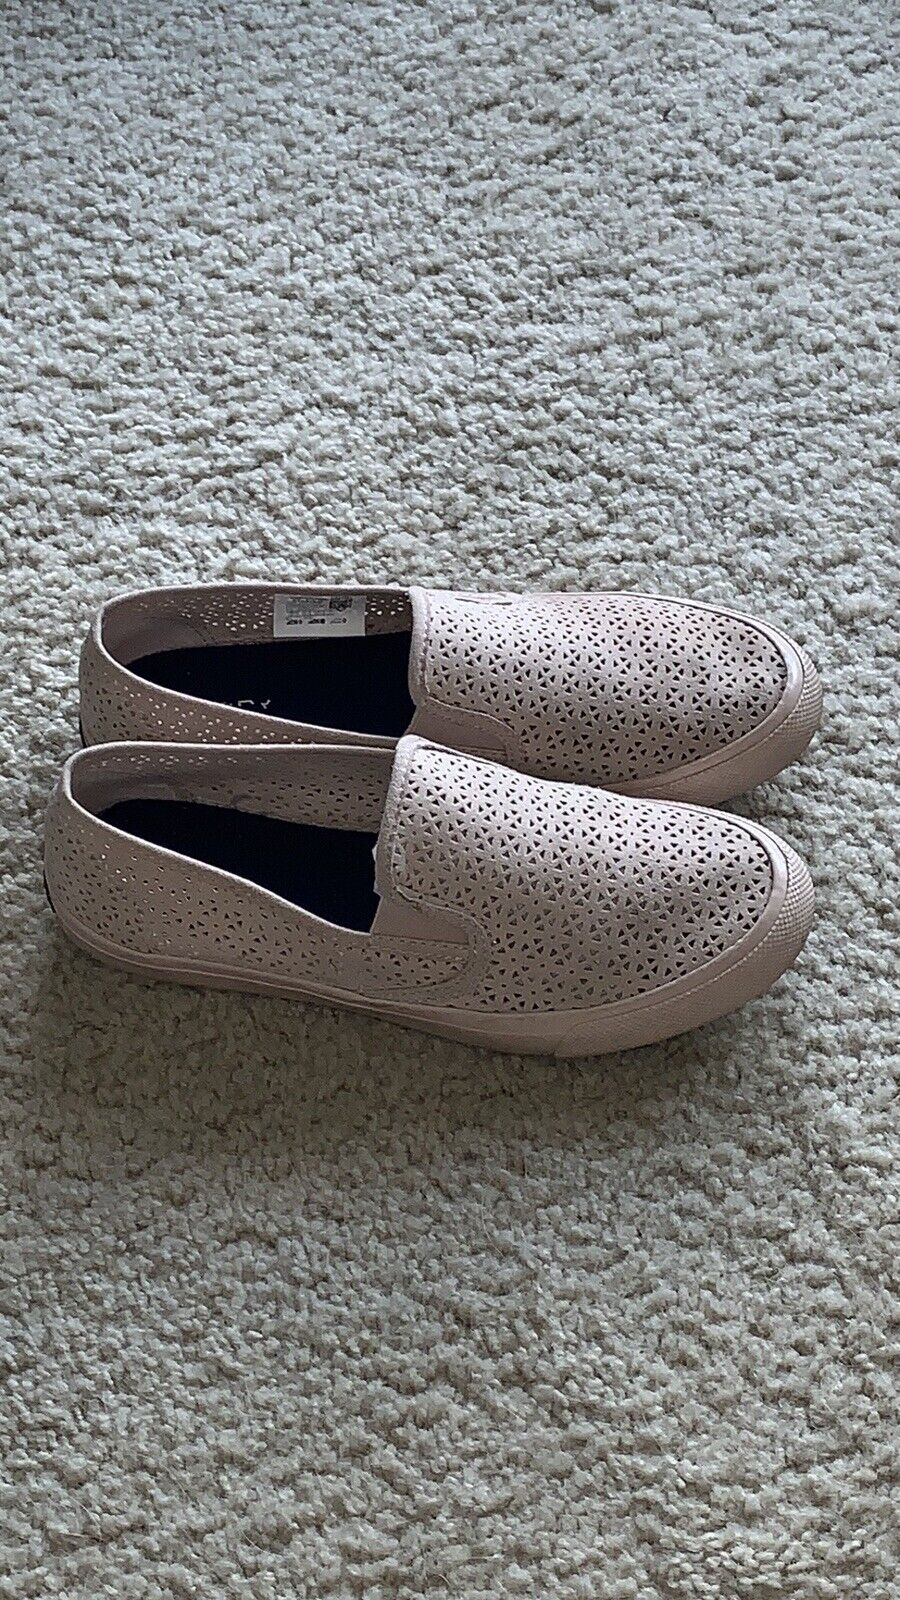 sperry boat Womens Seaside shoes suede slip on Loafer Size 10